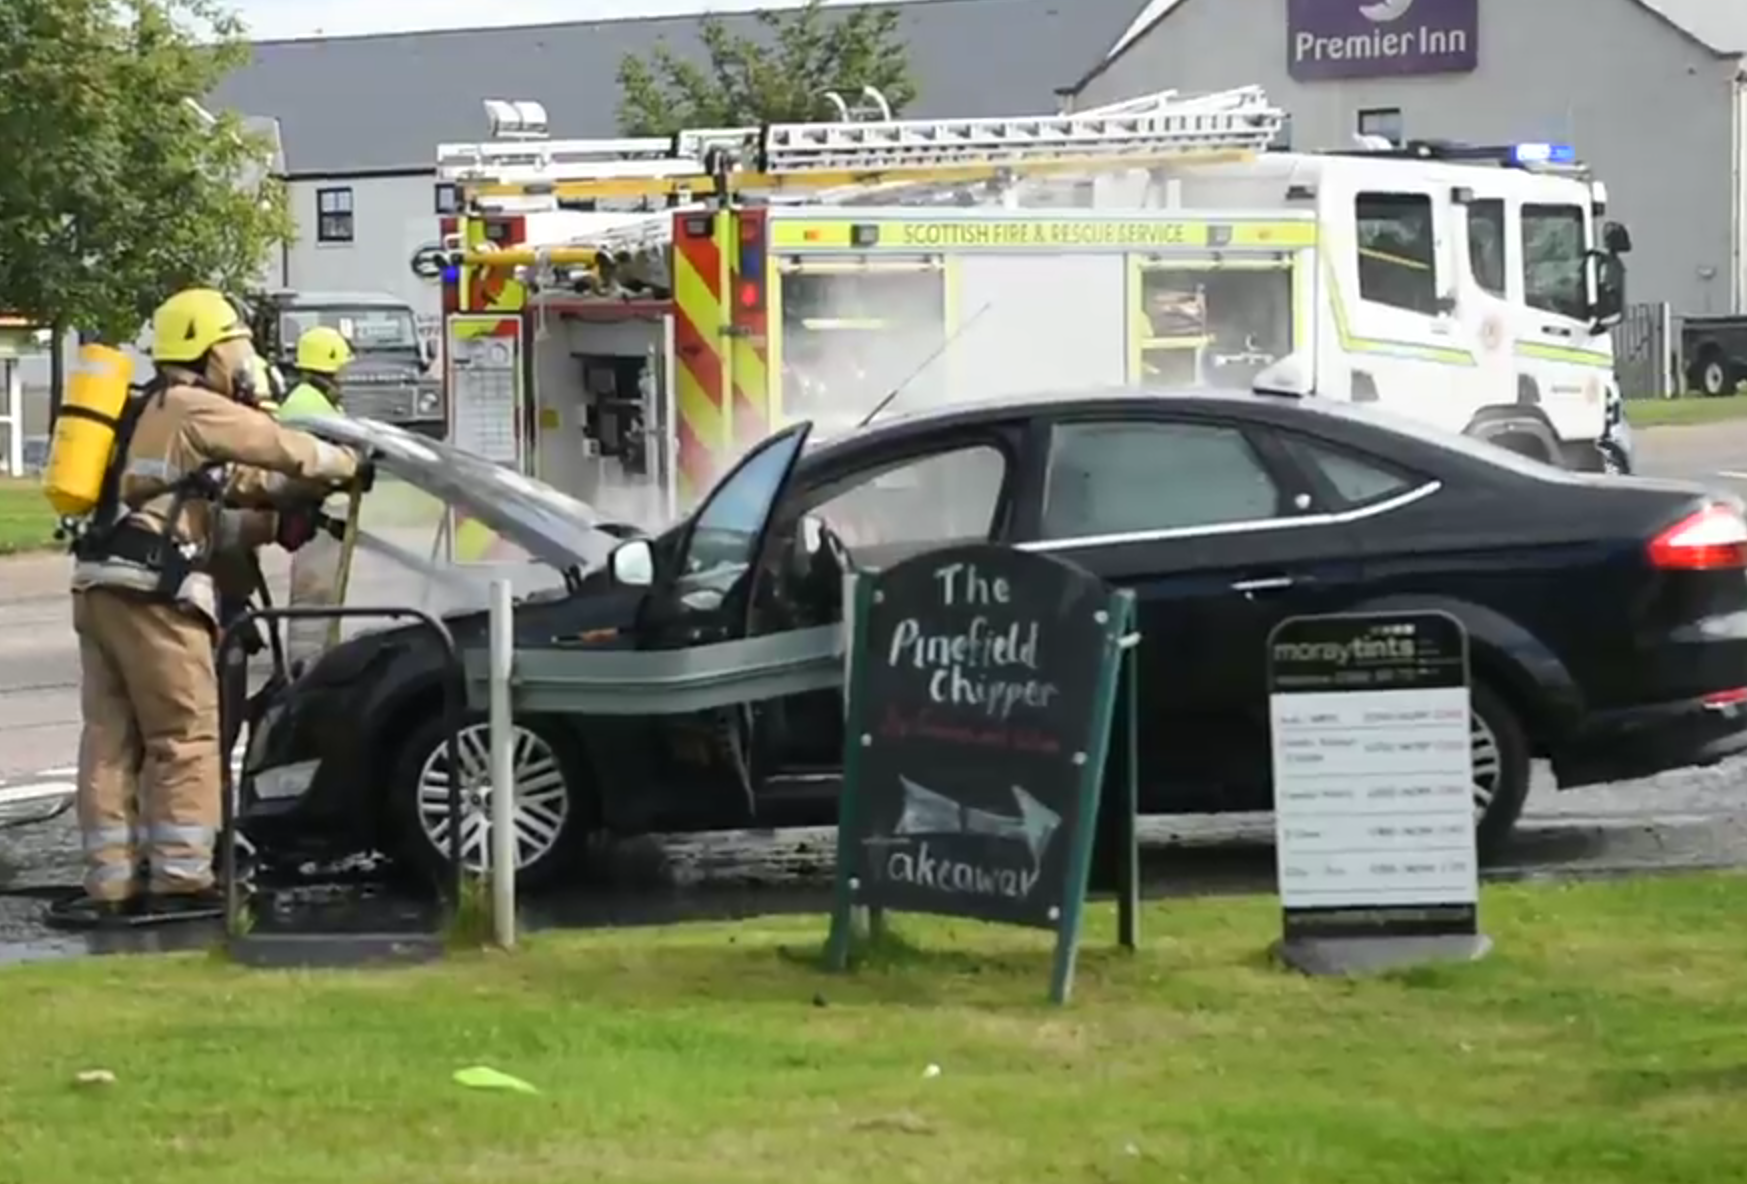 Firefighters battle the car fire in Elgin on the A96